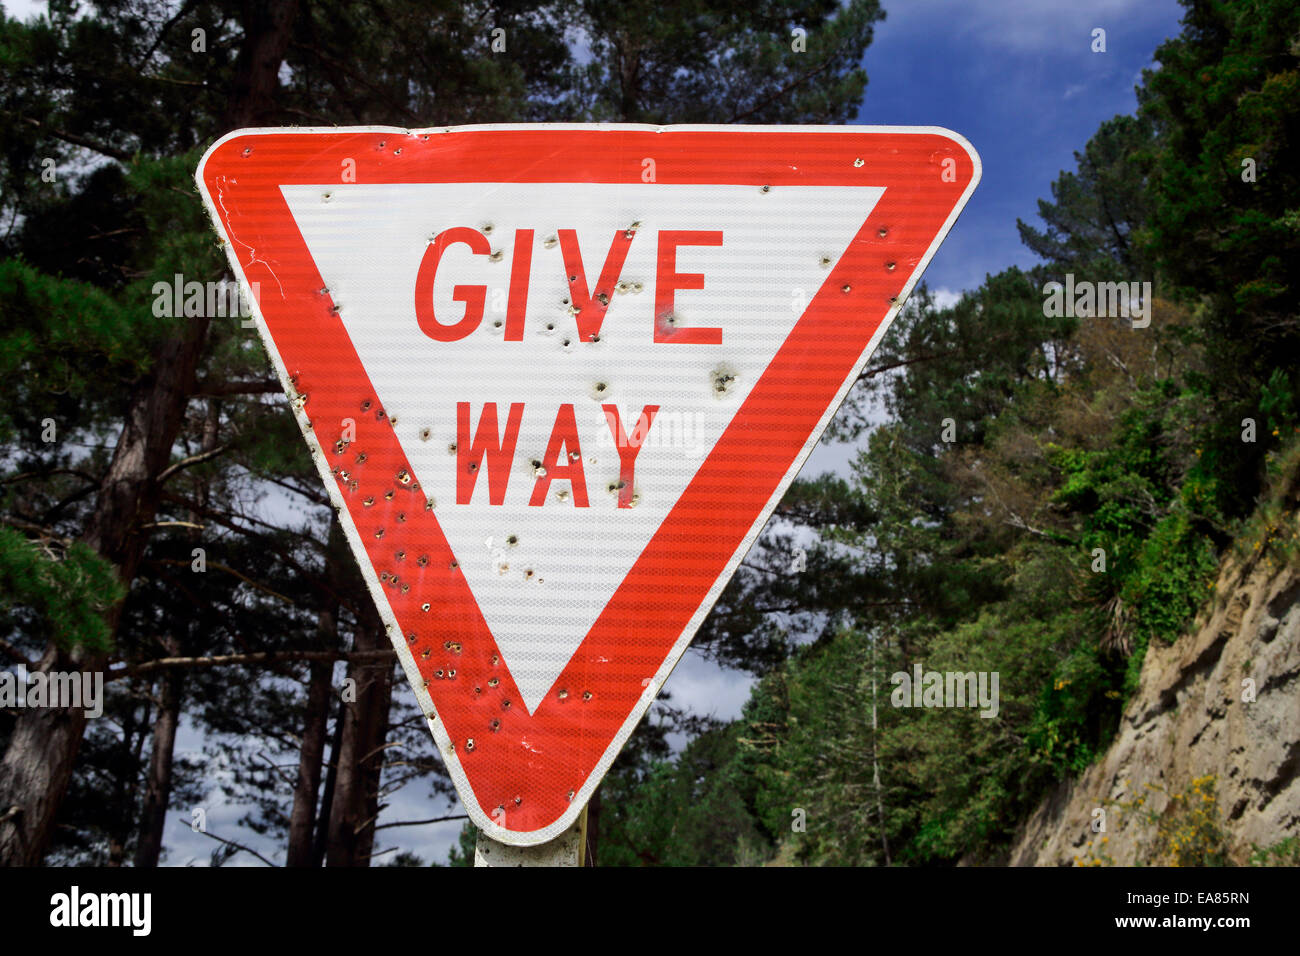 Give way road sign full of bullet holes - Stock Image